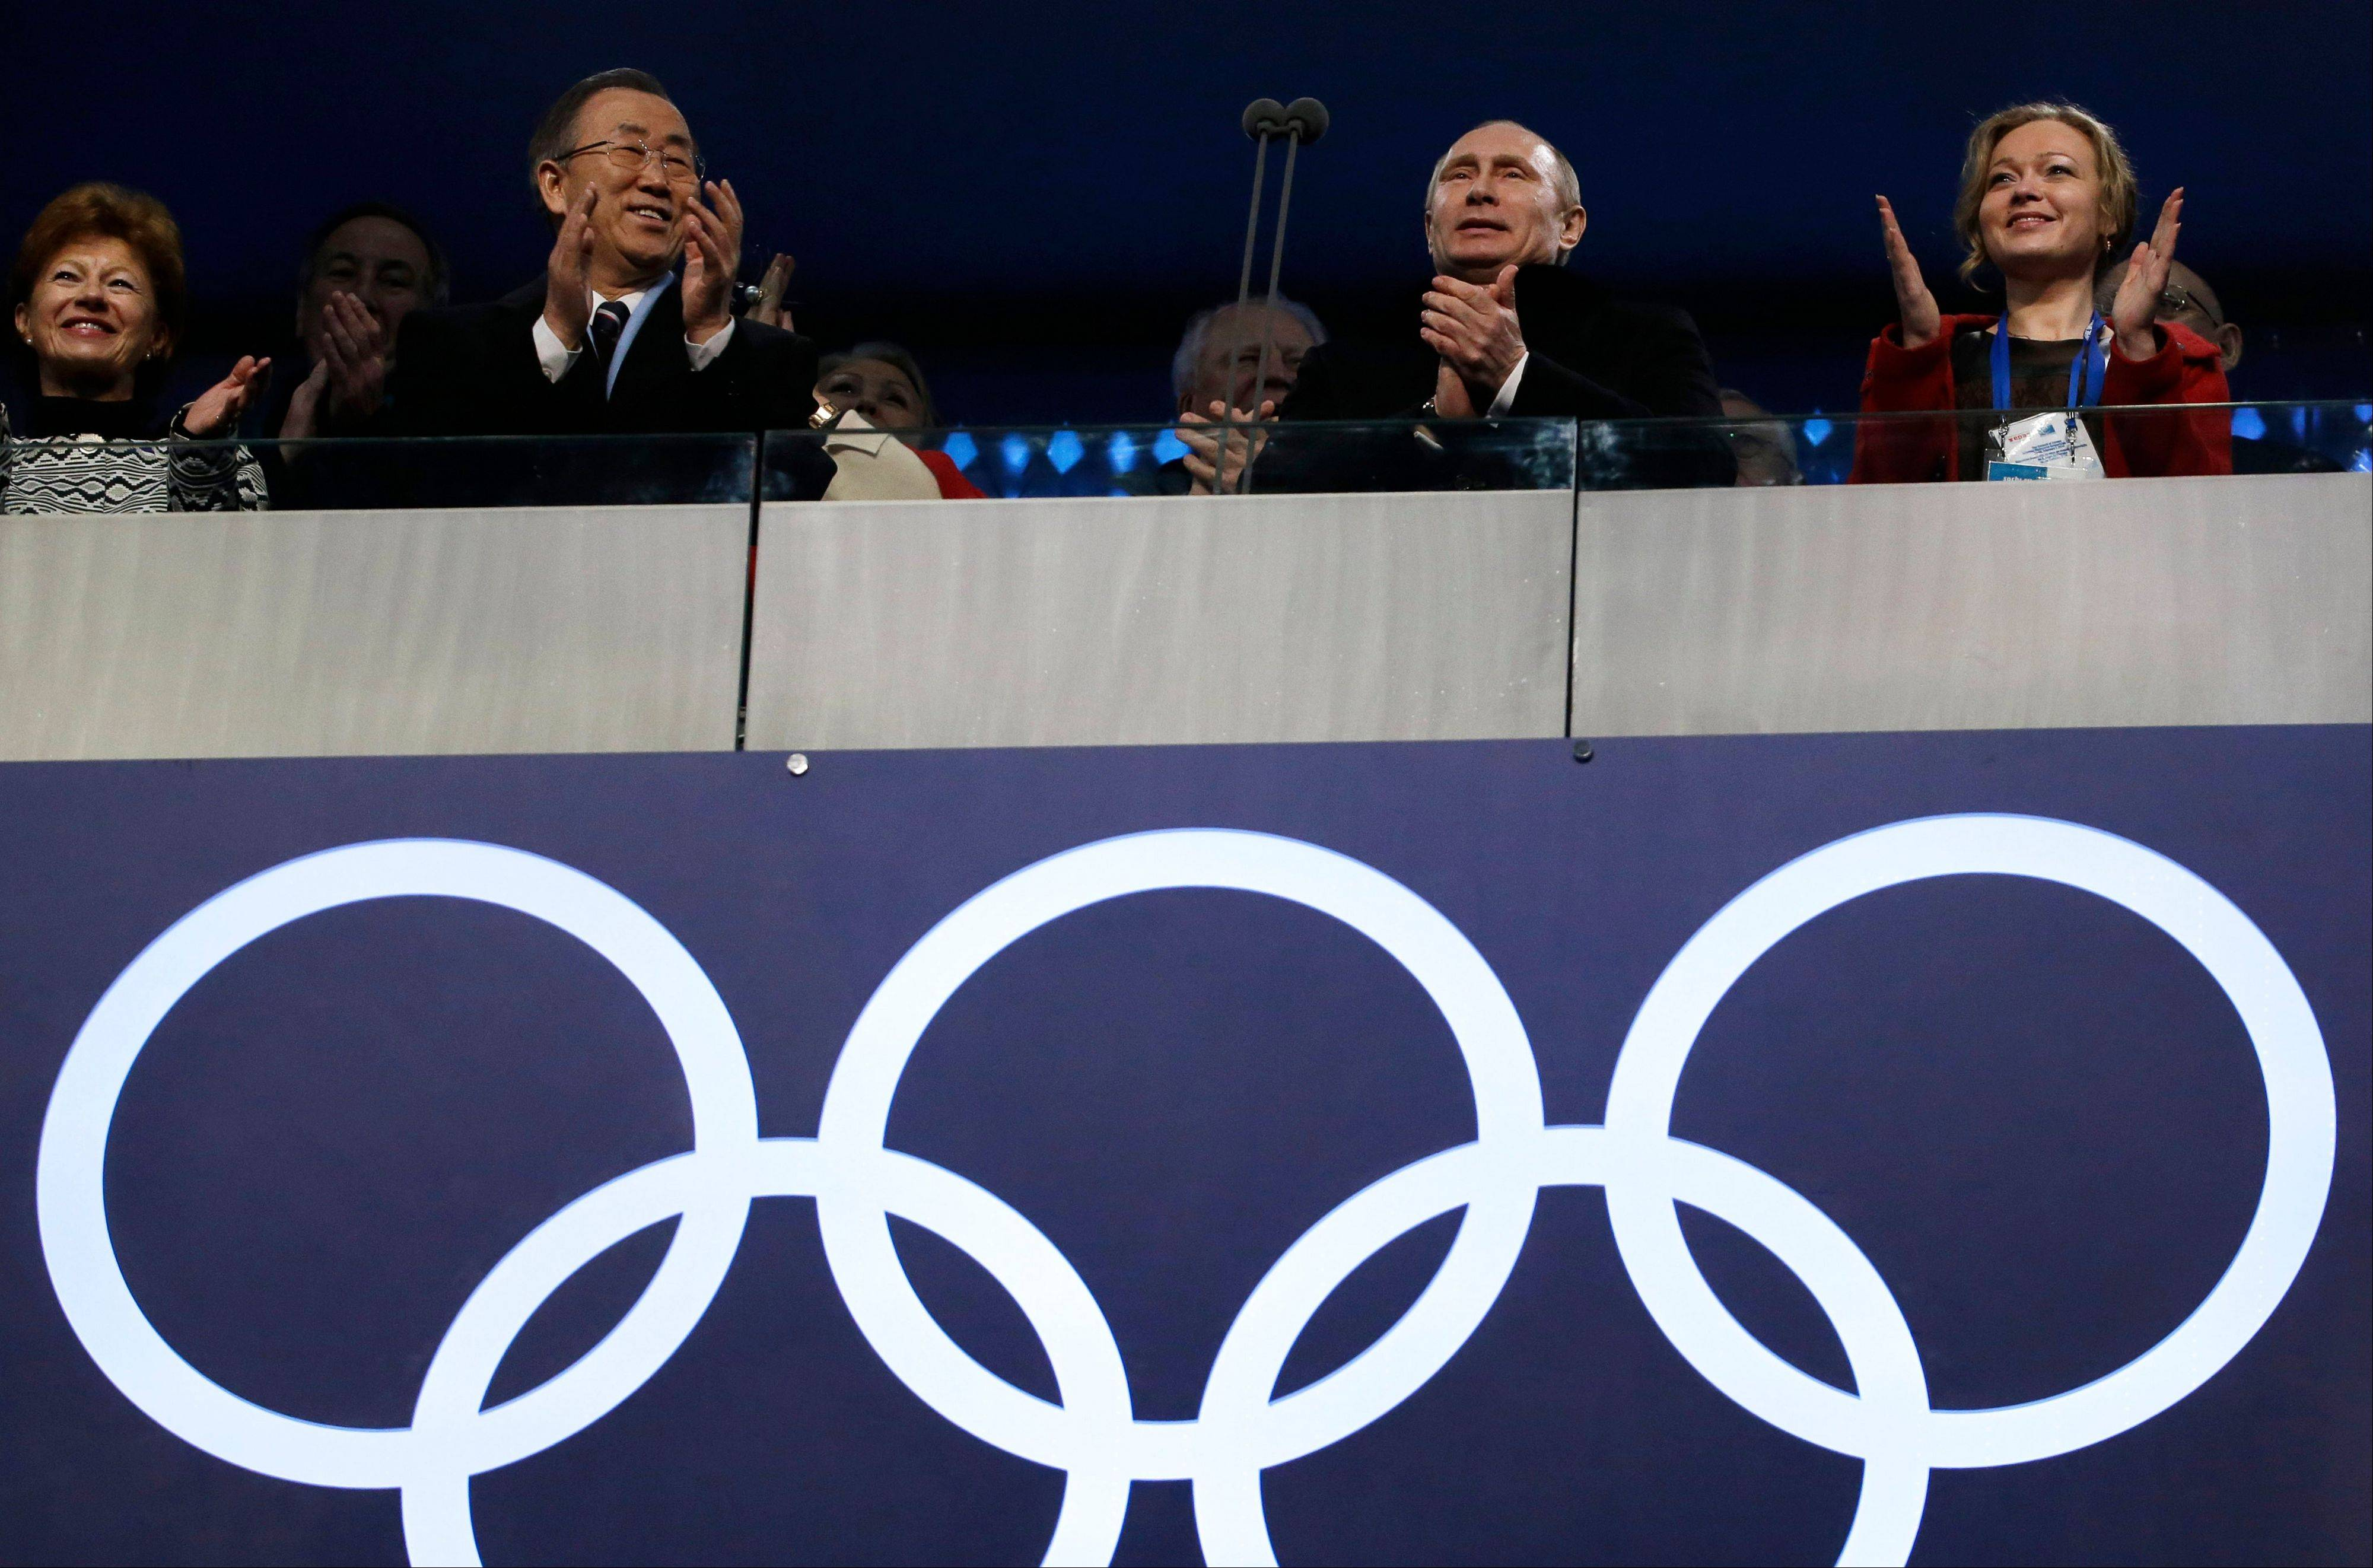 United Nations Secretary-General Ban Ki-moon, second from left, Russian President Vladimir Putin, centre, and Russian bobsledder Irina Skvortsova, right, applaud during the opening ceremony.